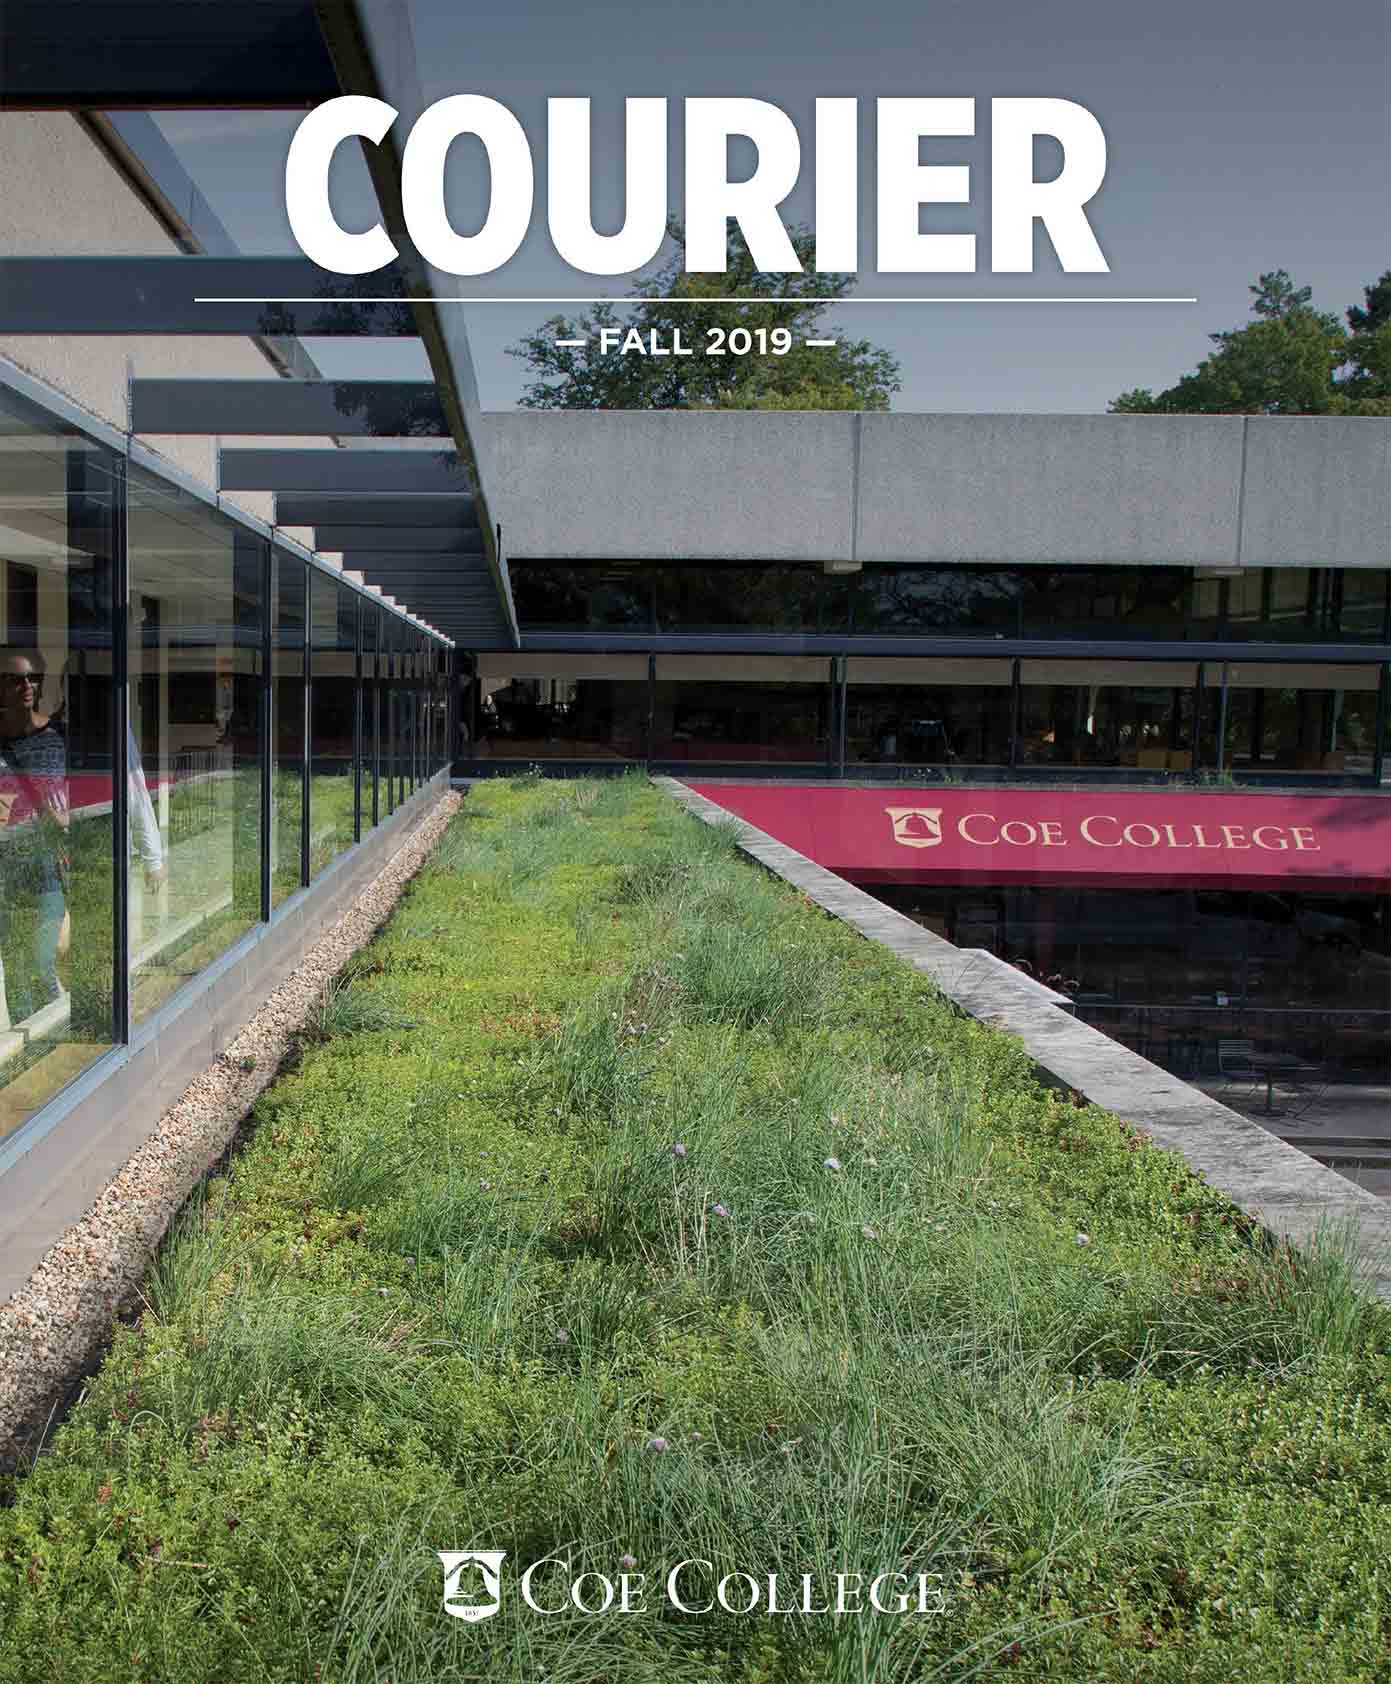 Fall 2019 Courier cover